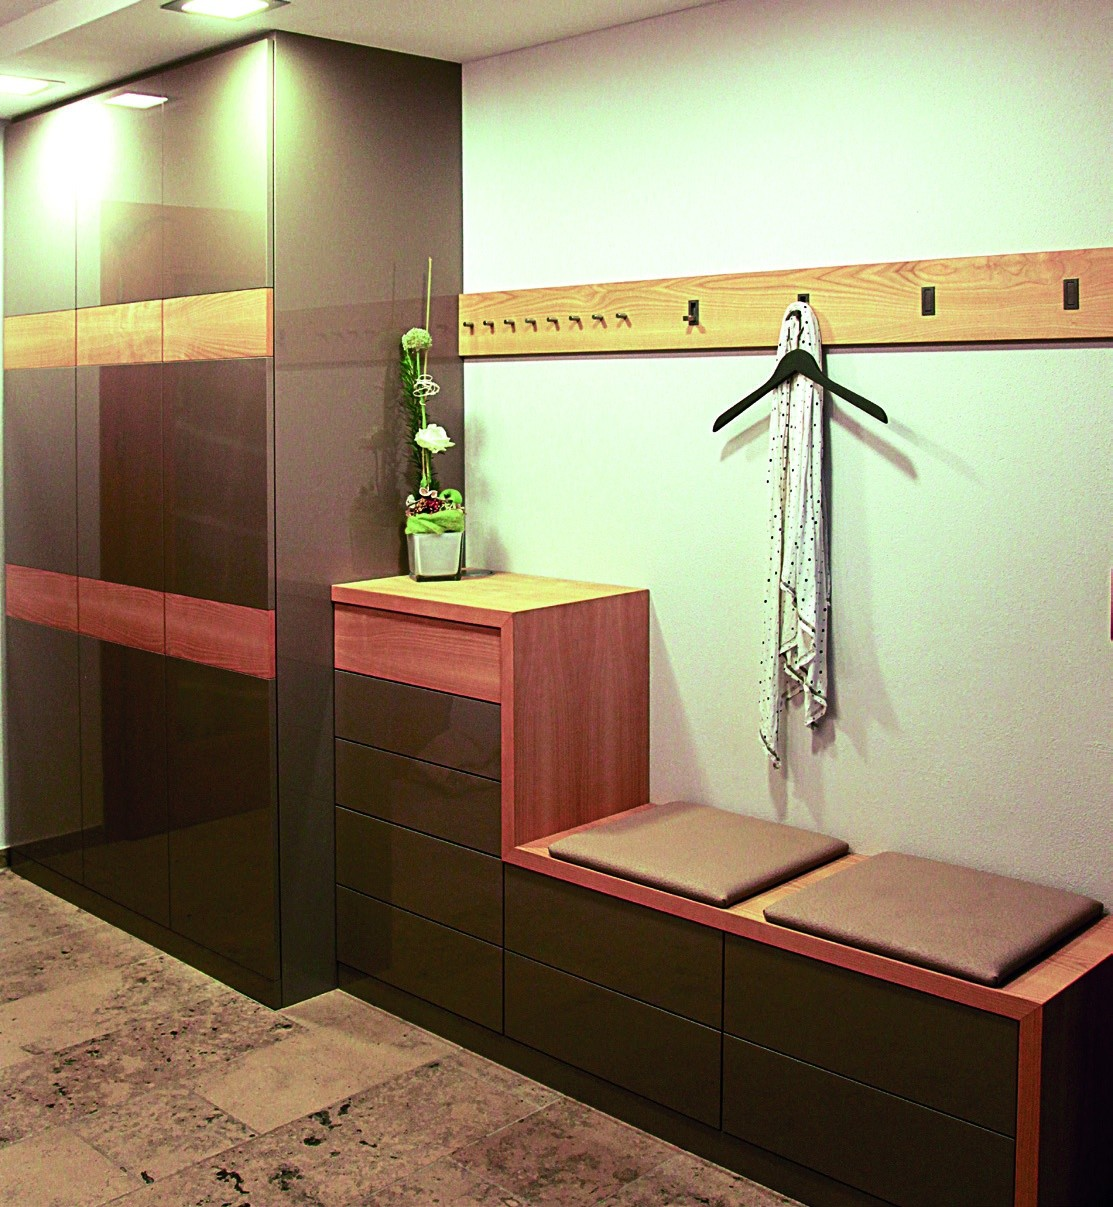 garderobe mit stange tolle weie garderobe with garderobe mit stange excellent diy gardrobe. Black Bedroom Furniture Sets. Home Design Ideas